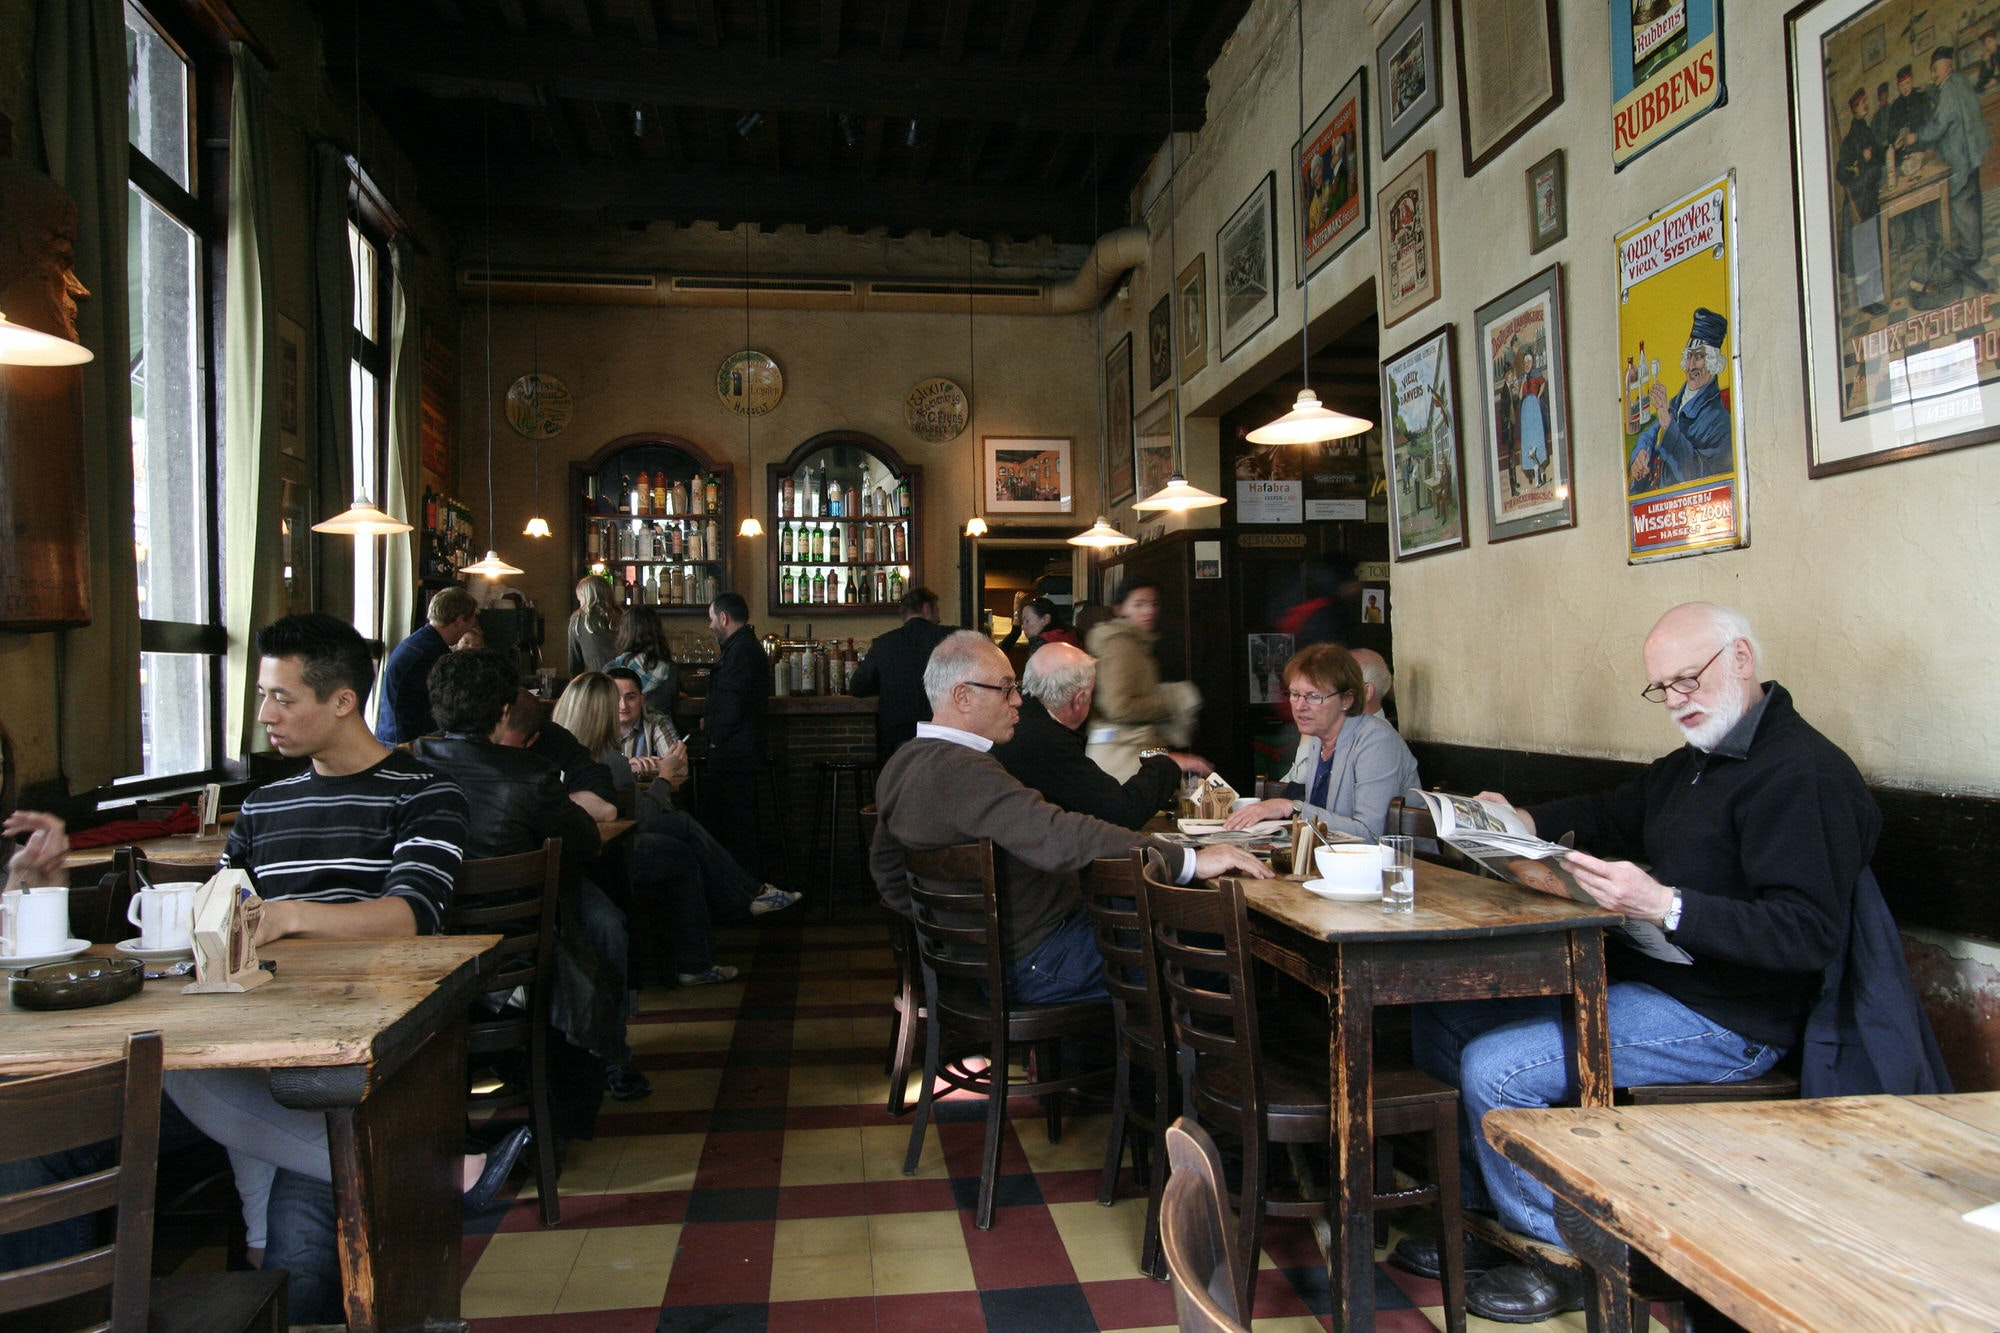 Jenever cafe De Vagant on Reyndersstraat, Antwerp